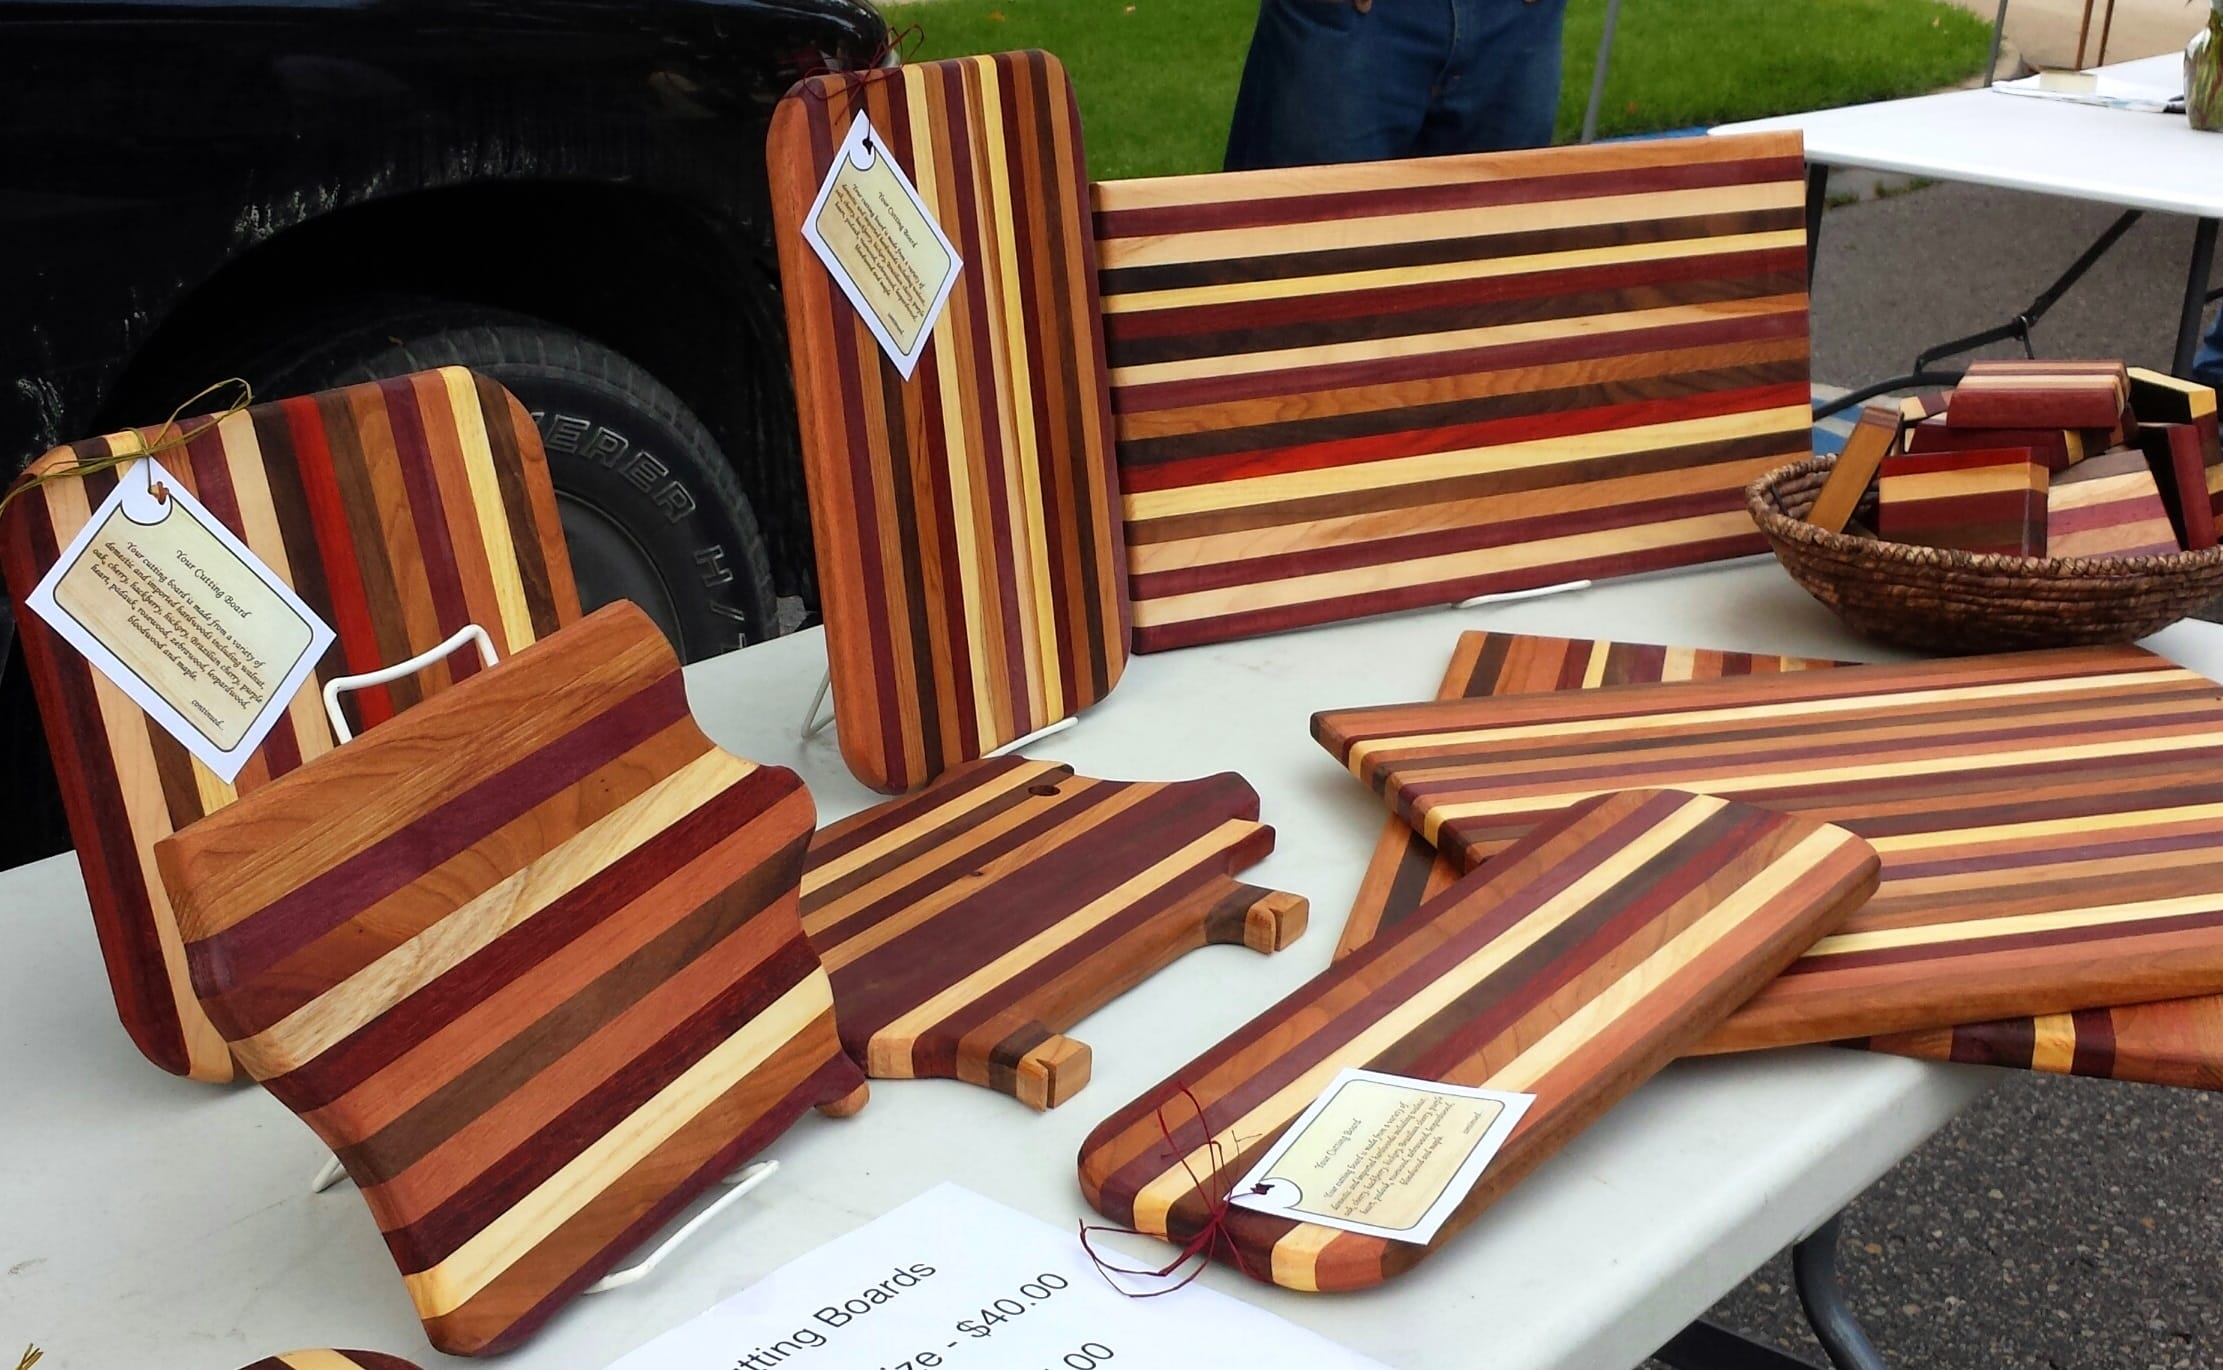 Farmers Market cutting boards